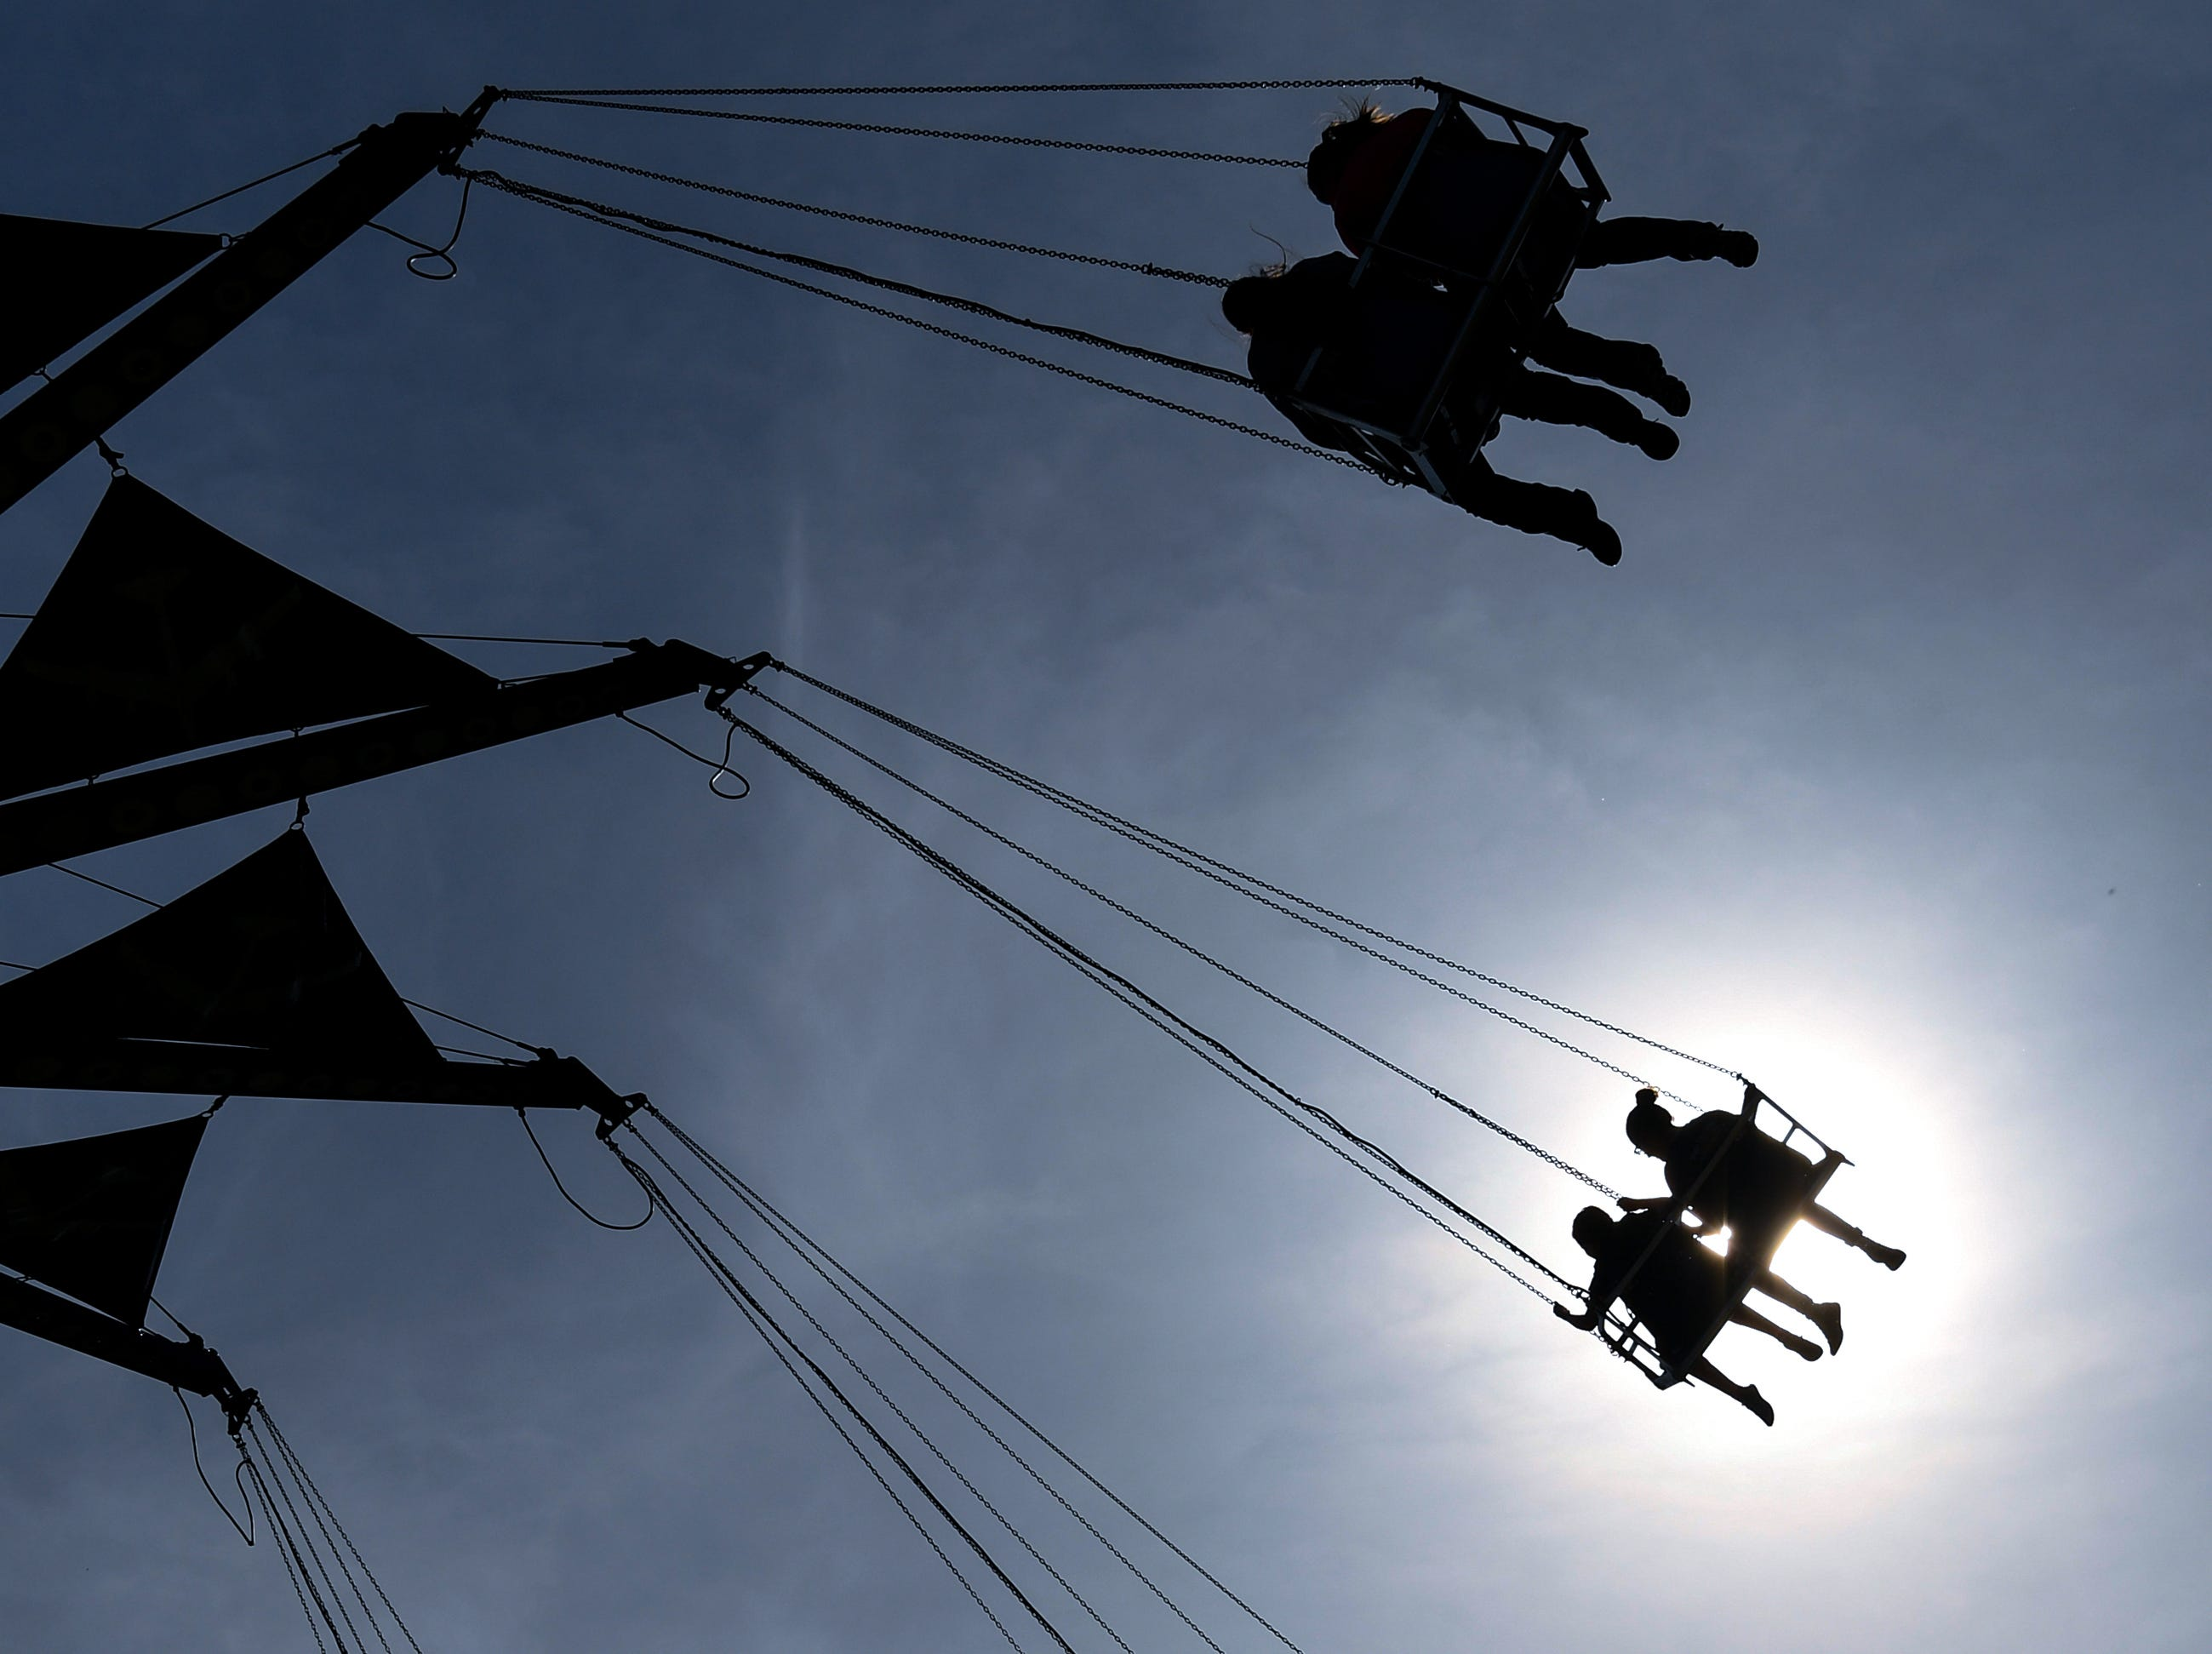 """Spring swing"" - Chairs are filled with people 100 feet off the ground on the Zoogvogel ride during the Great Anderson County Fair opening day at the Anderson Sports and Entertainment Complex."